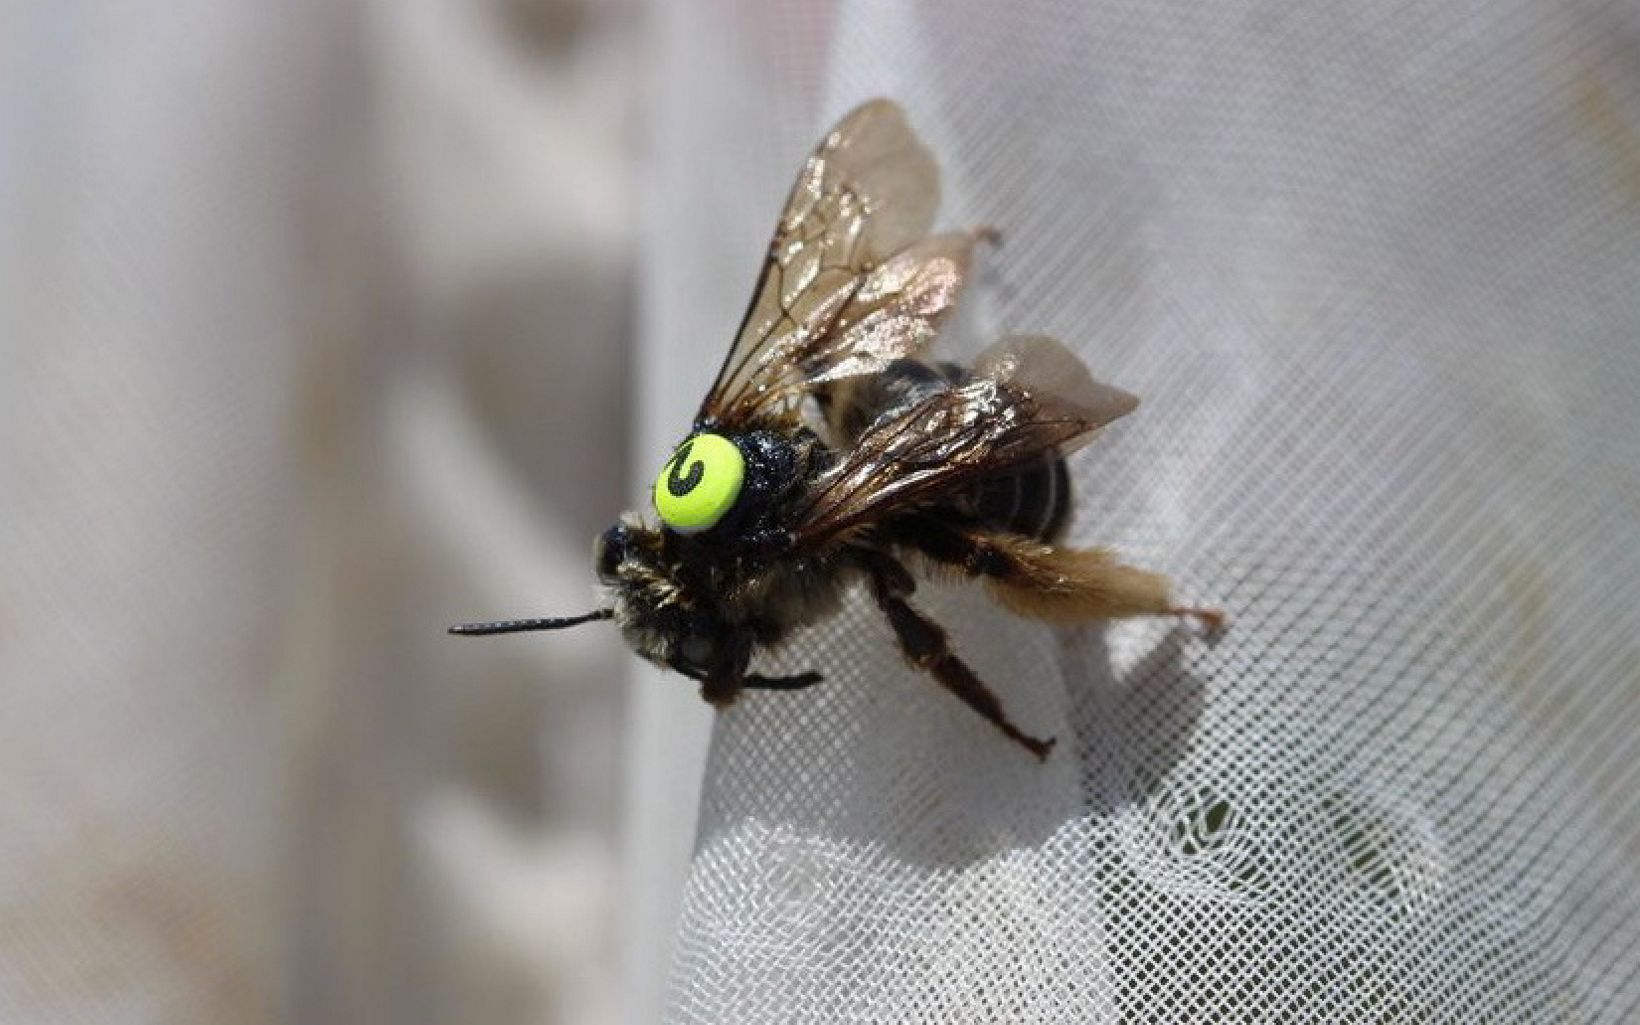 The Melissodes boltoniae is long-horned bee that does not have a common name. This bee has been fitted with a paper tag for Shelly Wiggam's research on solitary bees.